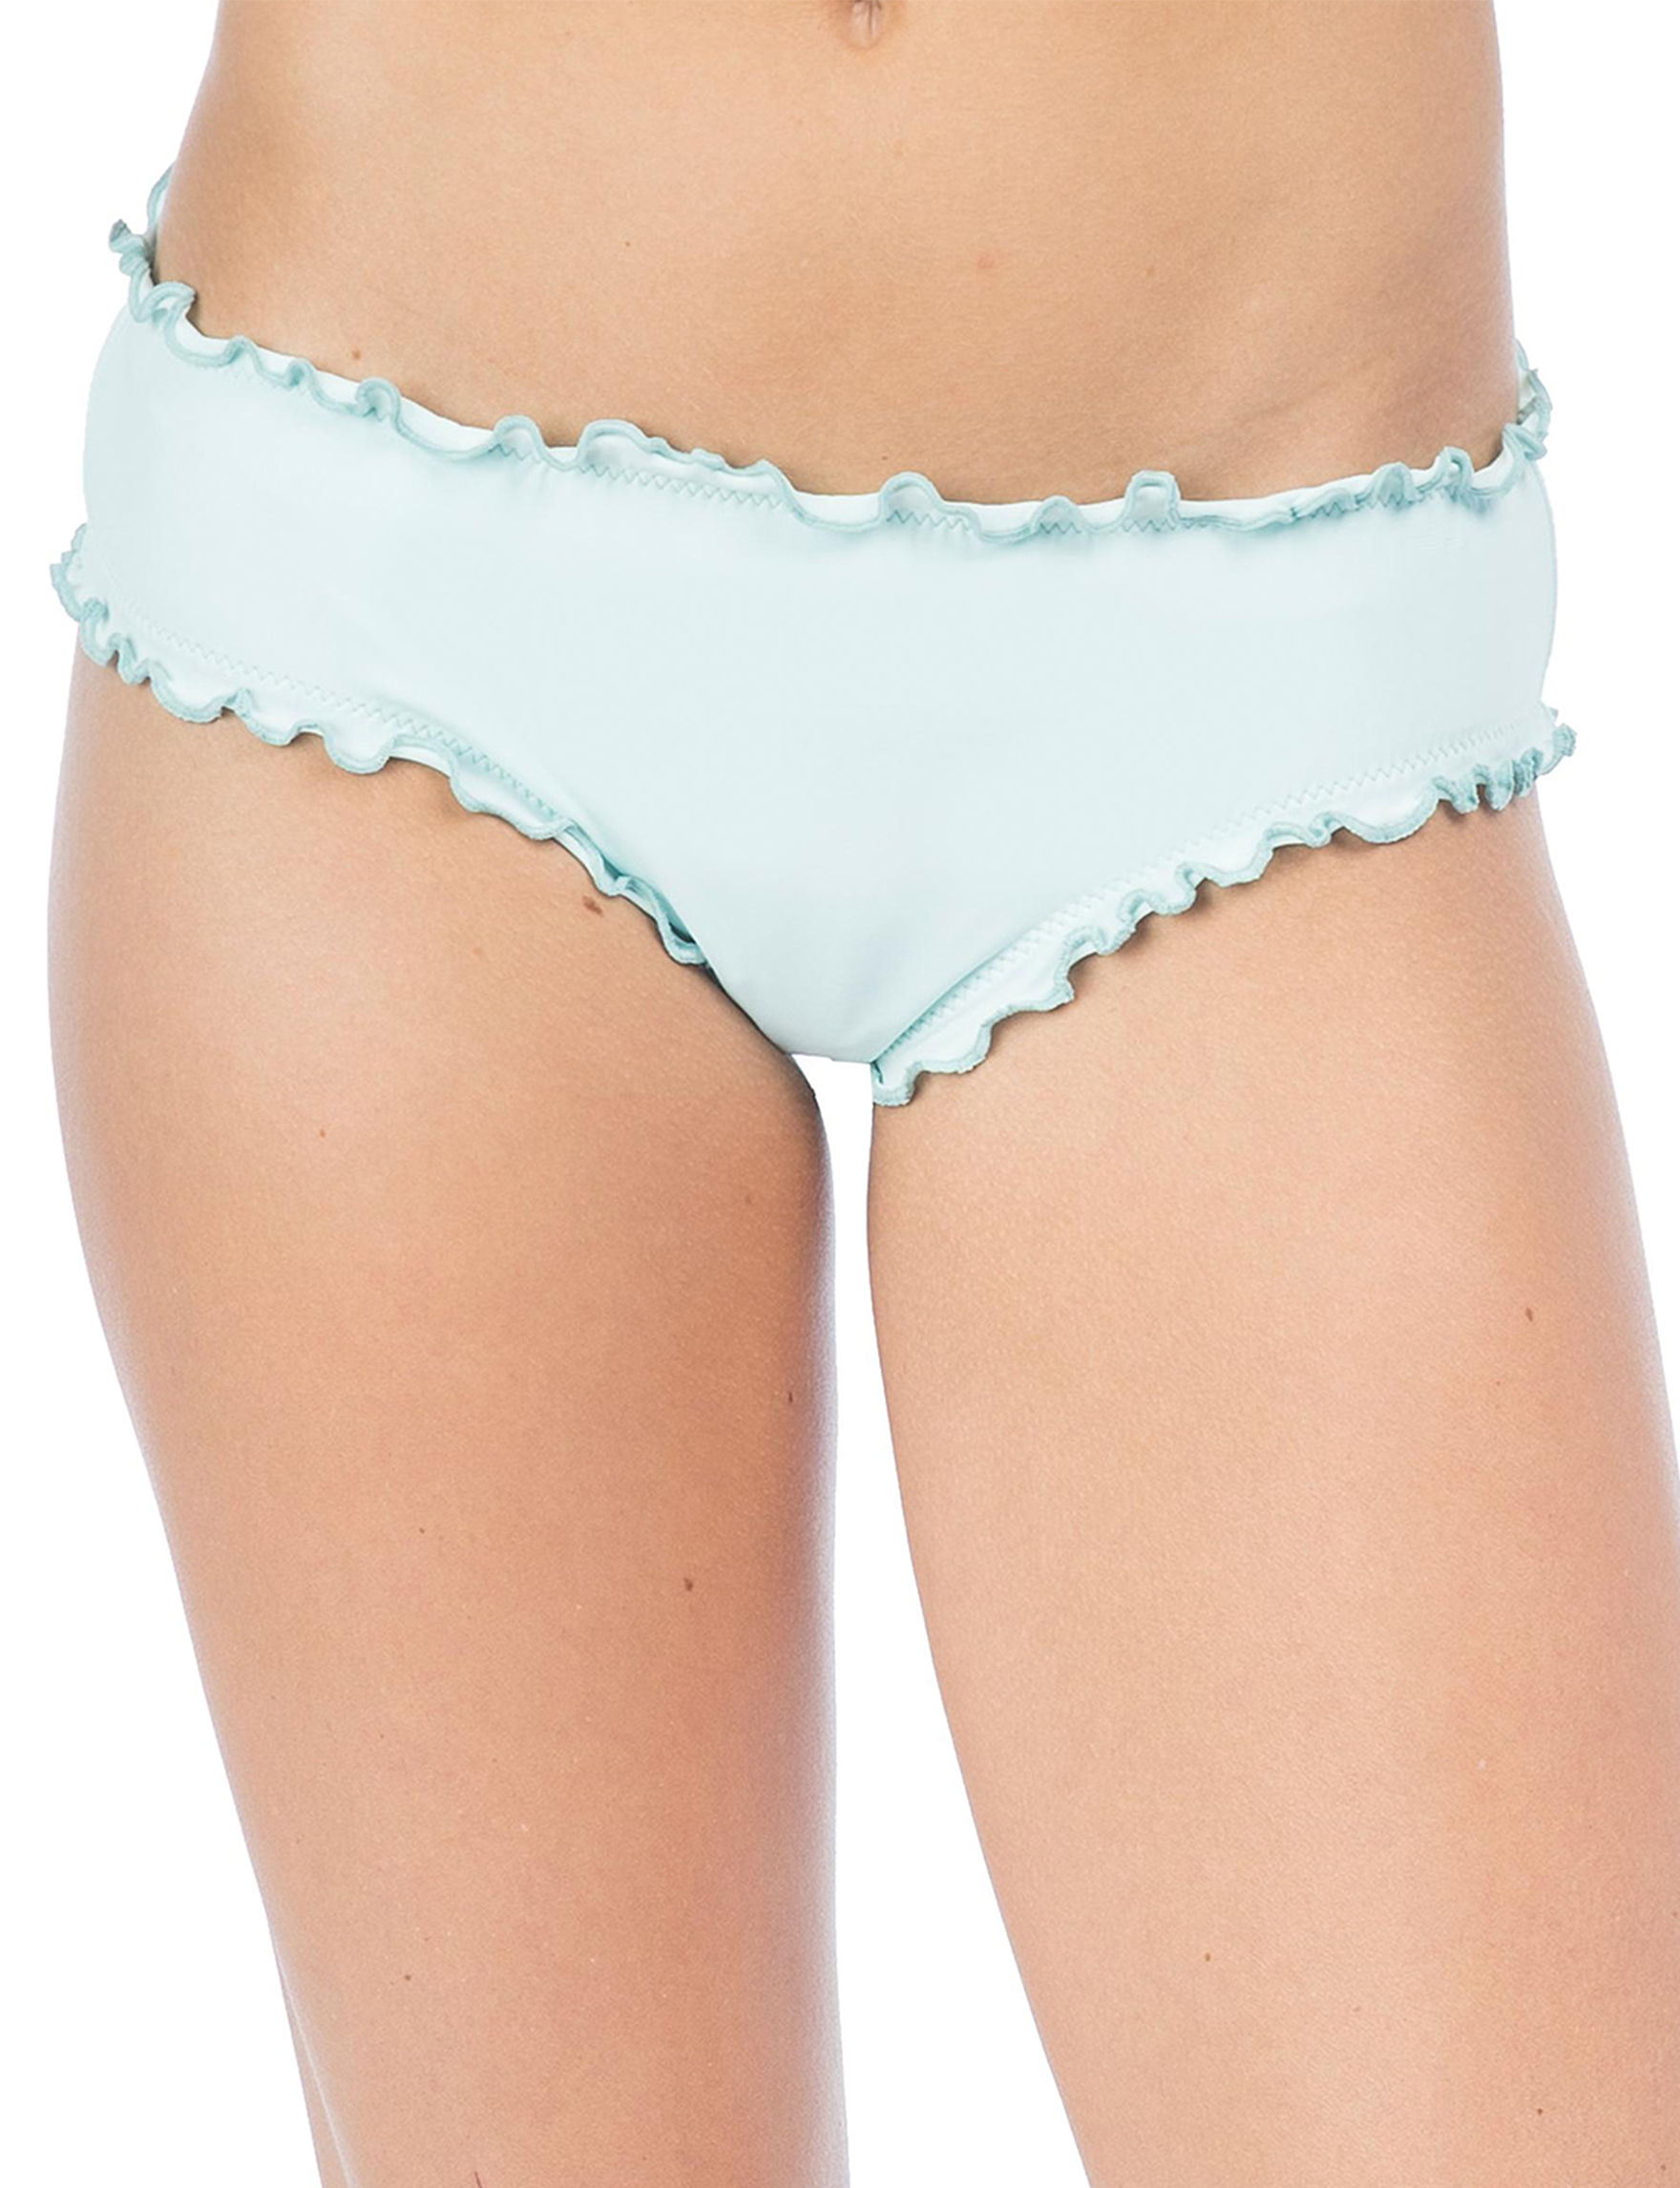 Hobie Blue Swimsuit Bottoms Hipster